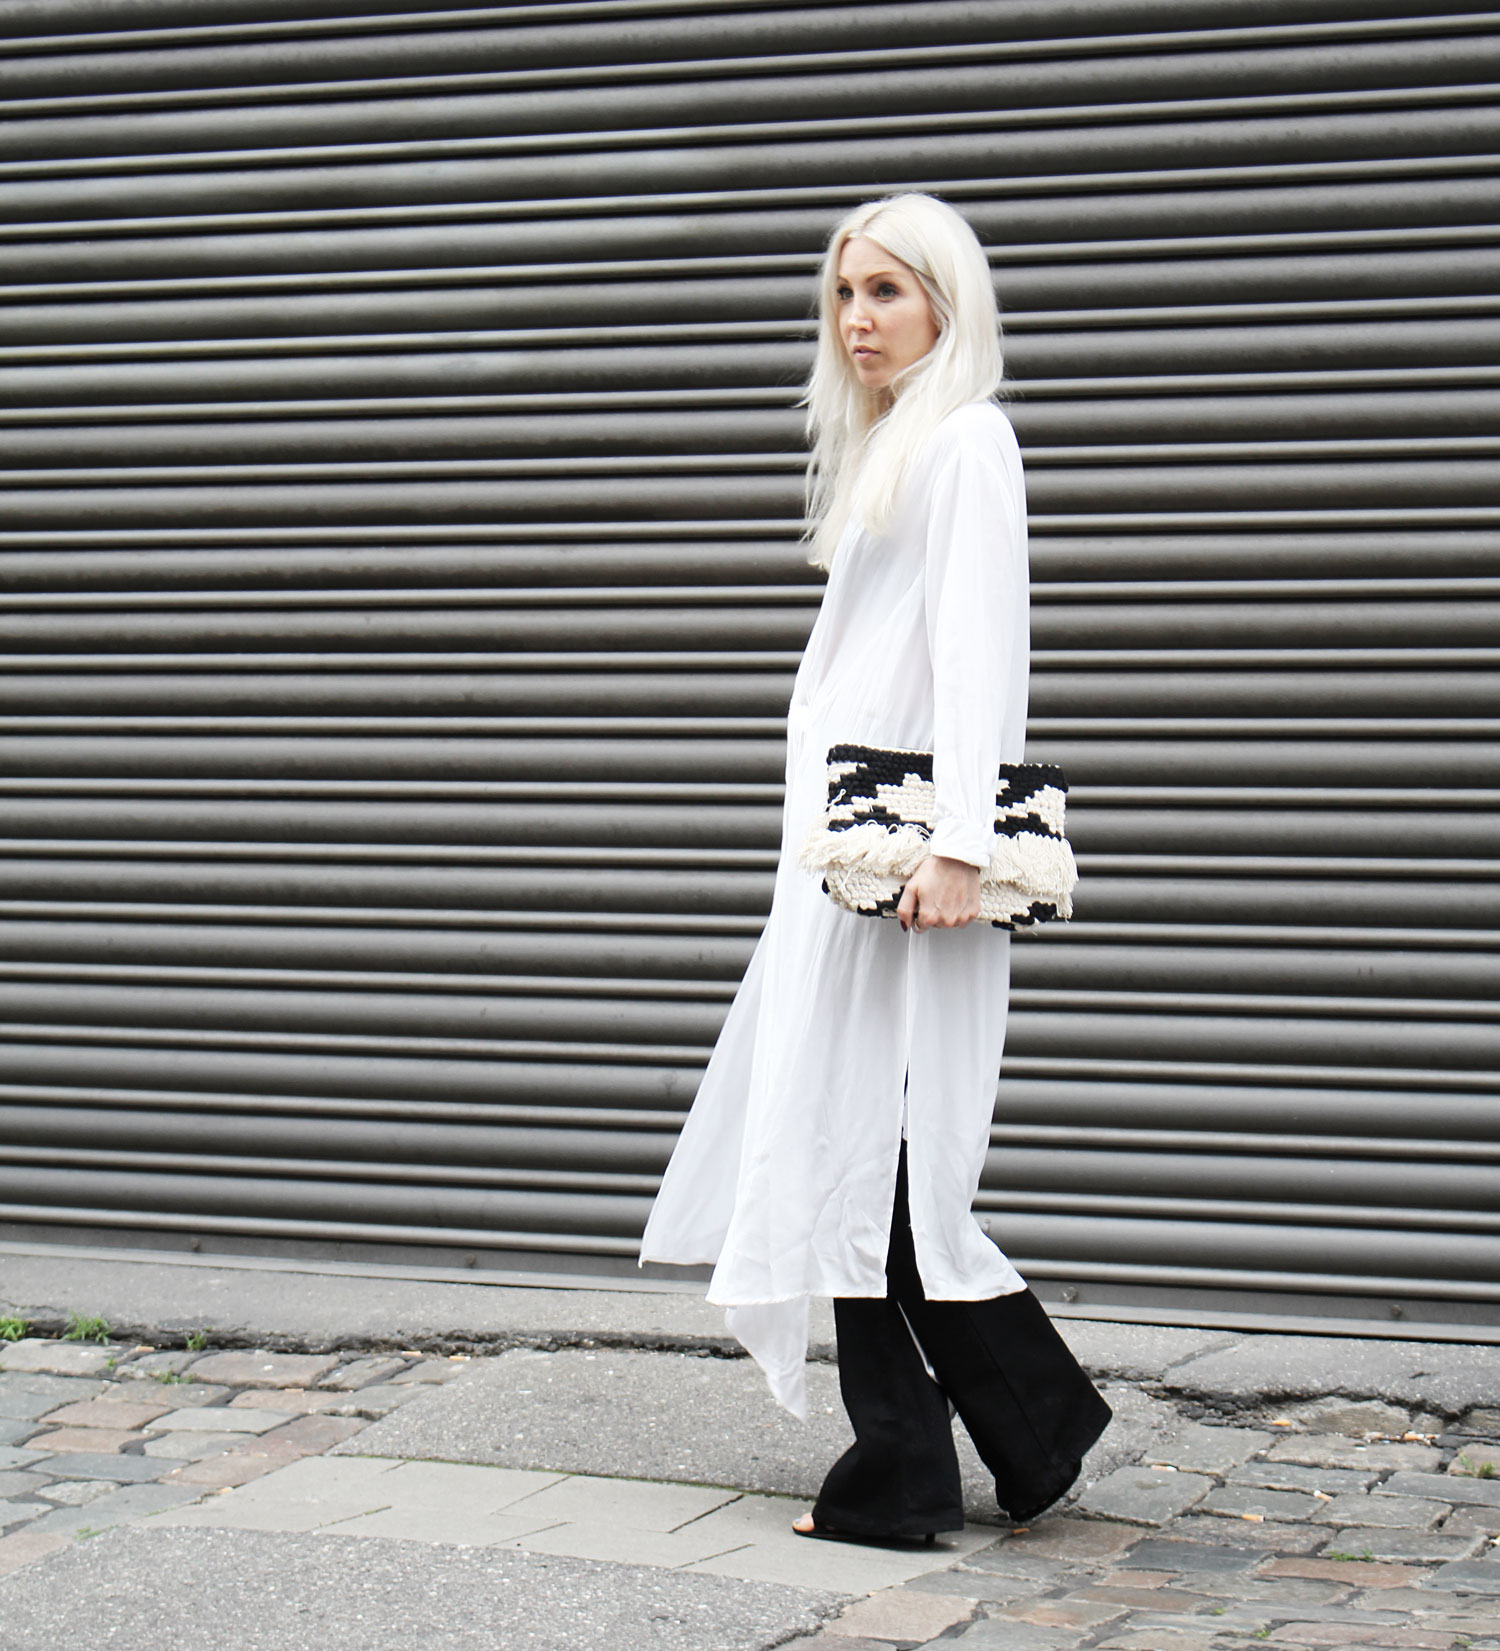 Selfnation Flared Pants Longblouse Hm Monochrome Look Style Outfit Ootd Fashion Blog Stryletz 04